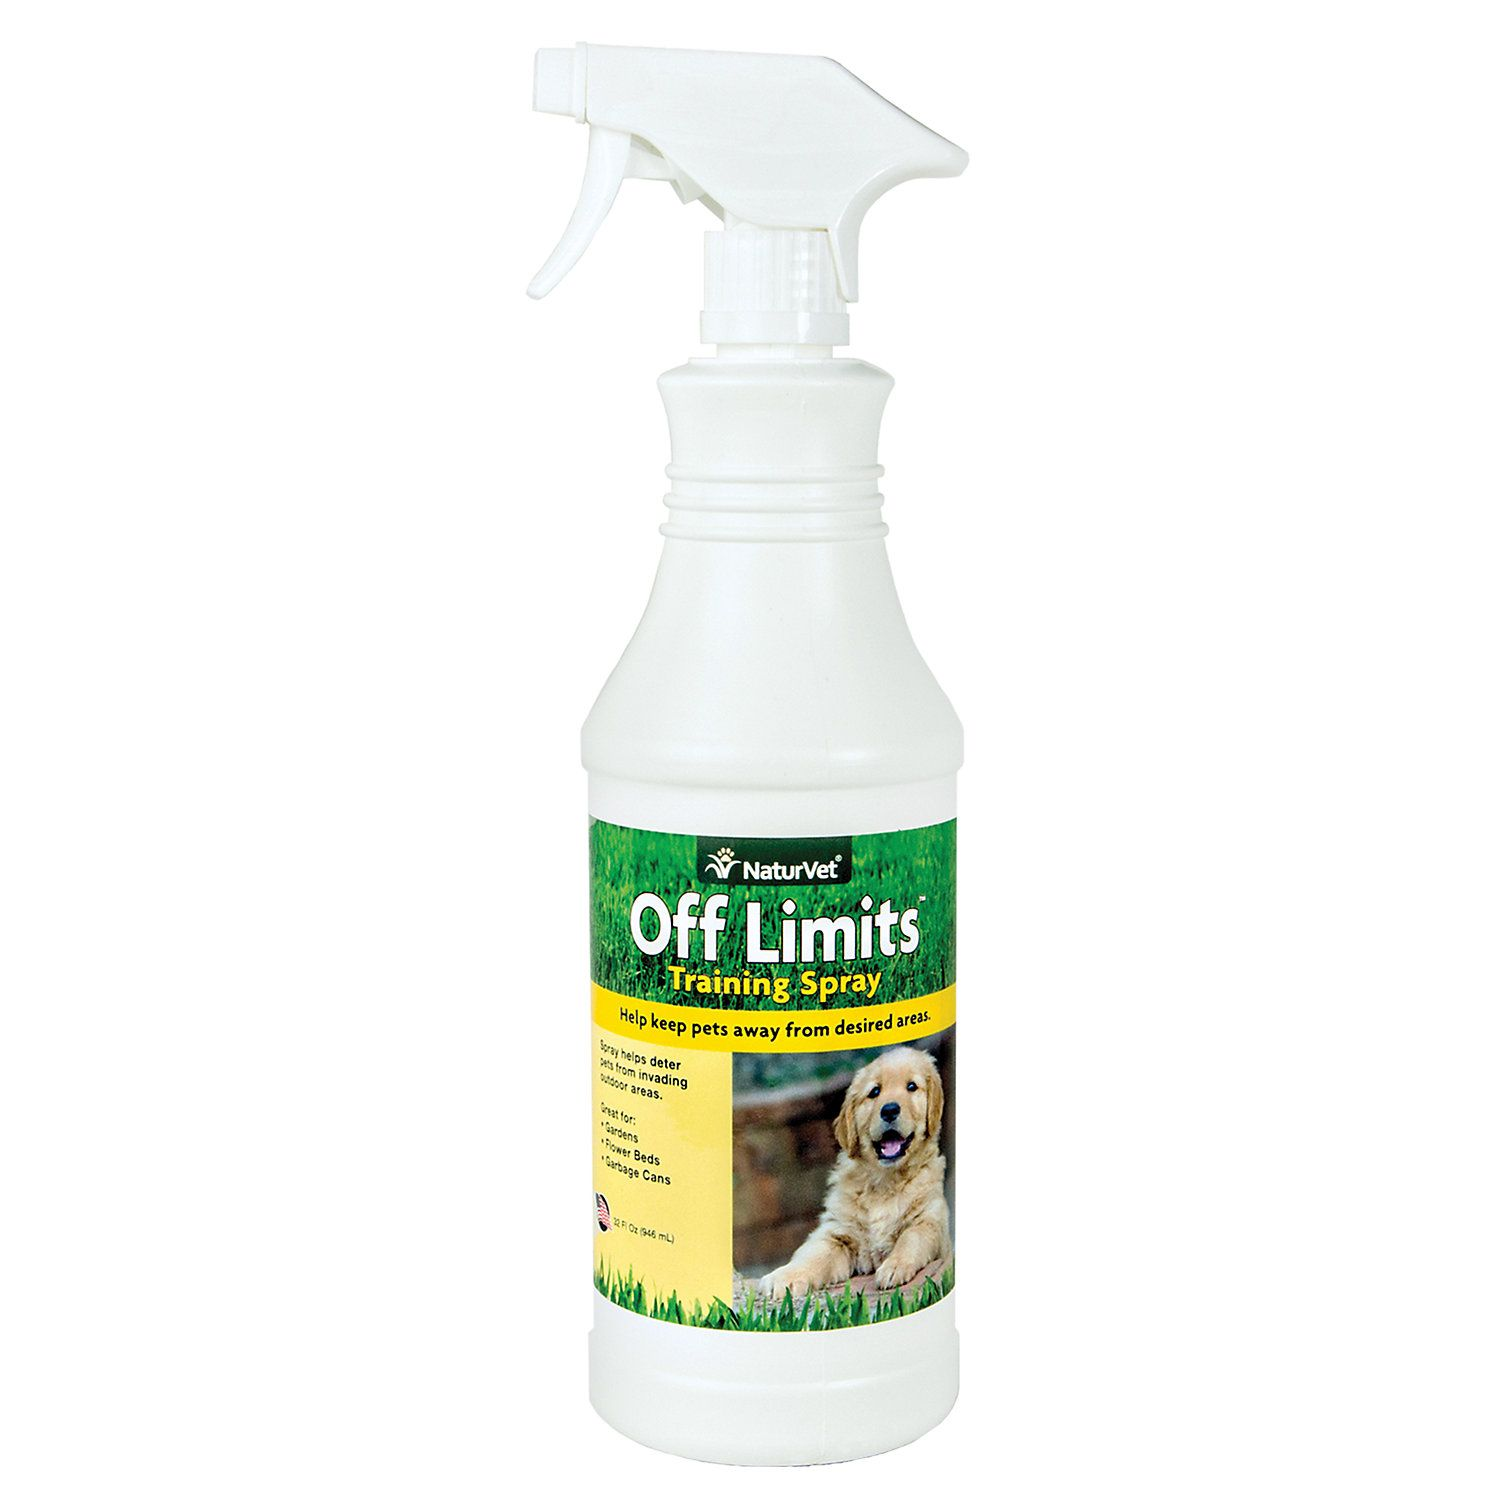 Naturvet Off Limits Dog Training Spray Dog Training Spray Pet